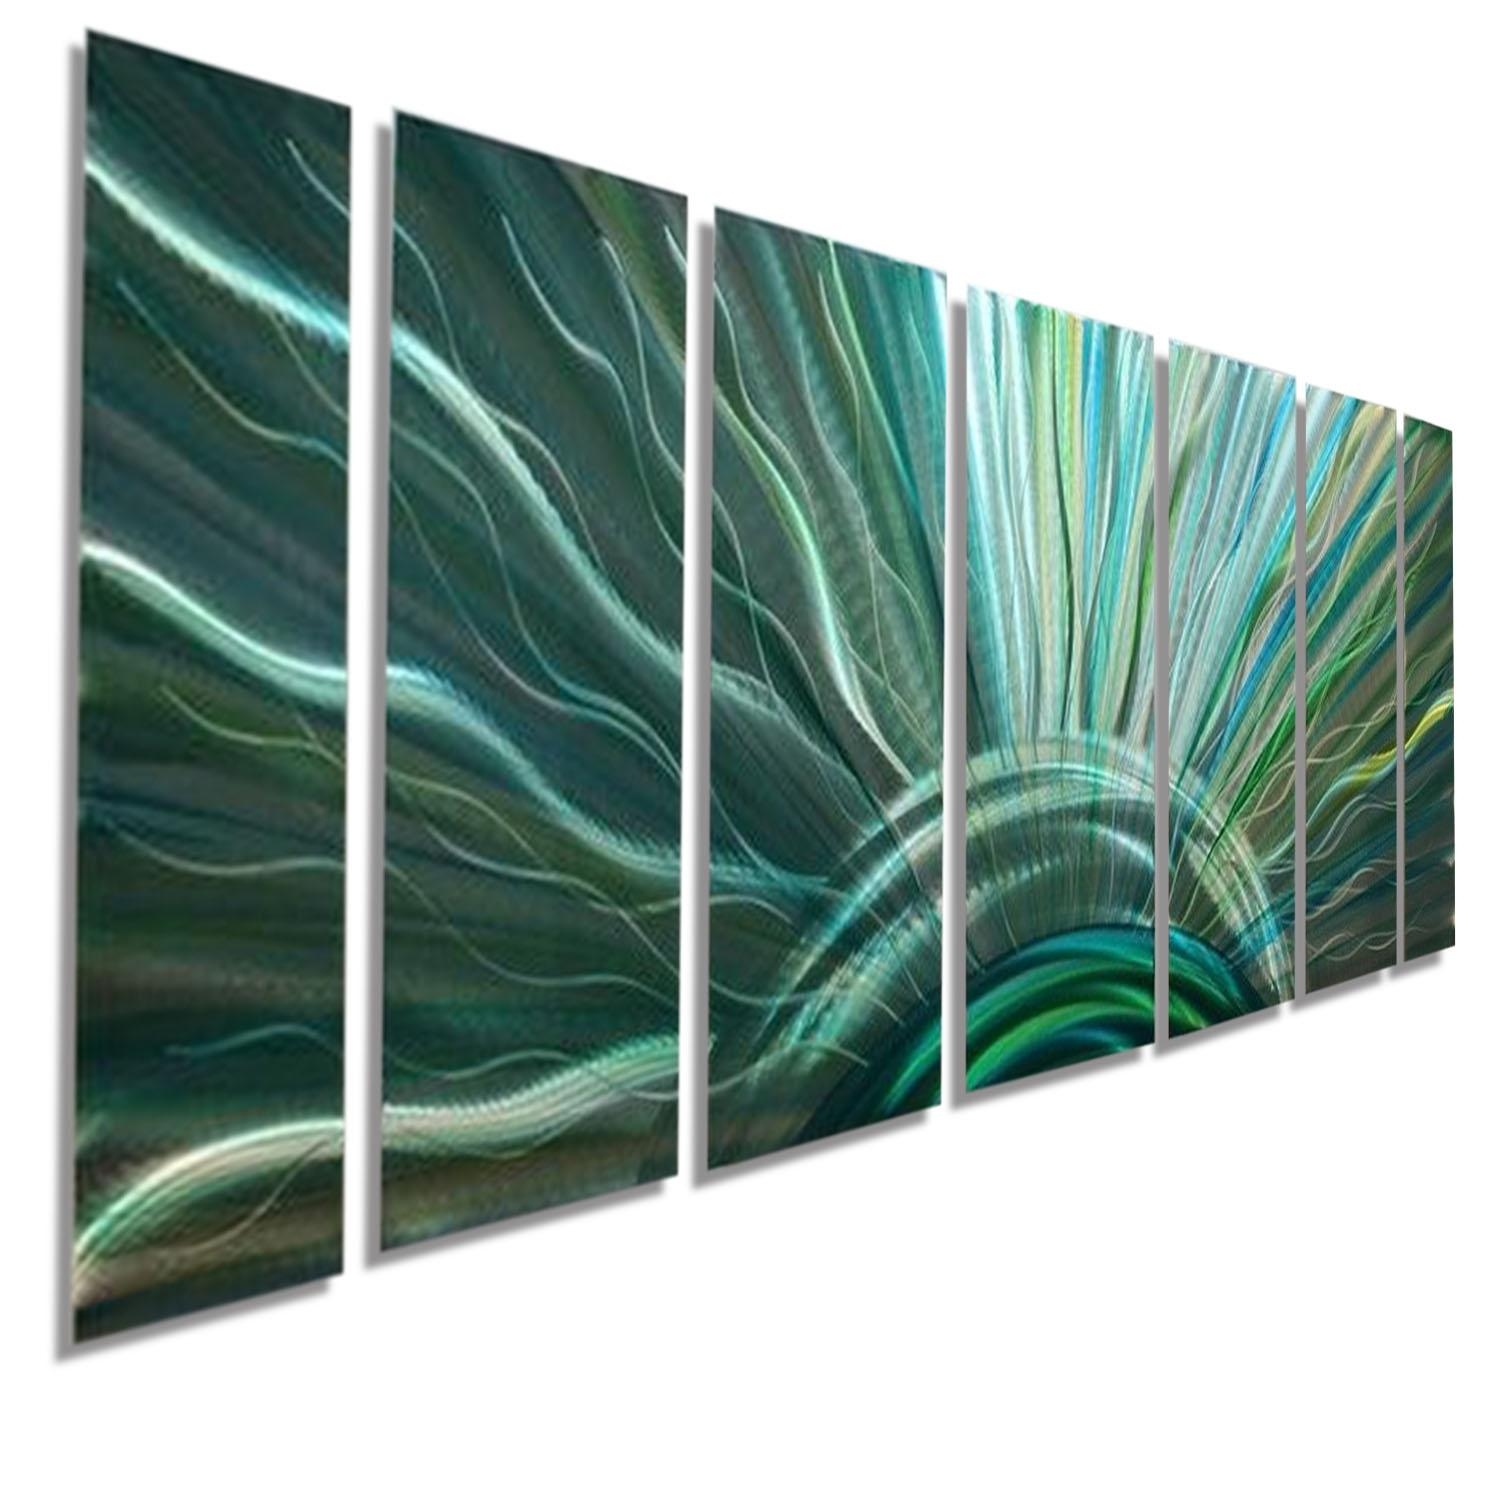 Blue Moon – Silver With Blue & Green Fusion Modern Metal Wall Art Intended For Blue And Green Wall Art (Image 6 of 20)